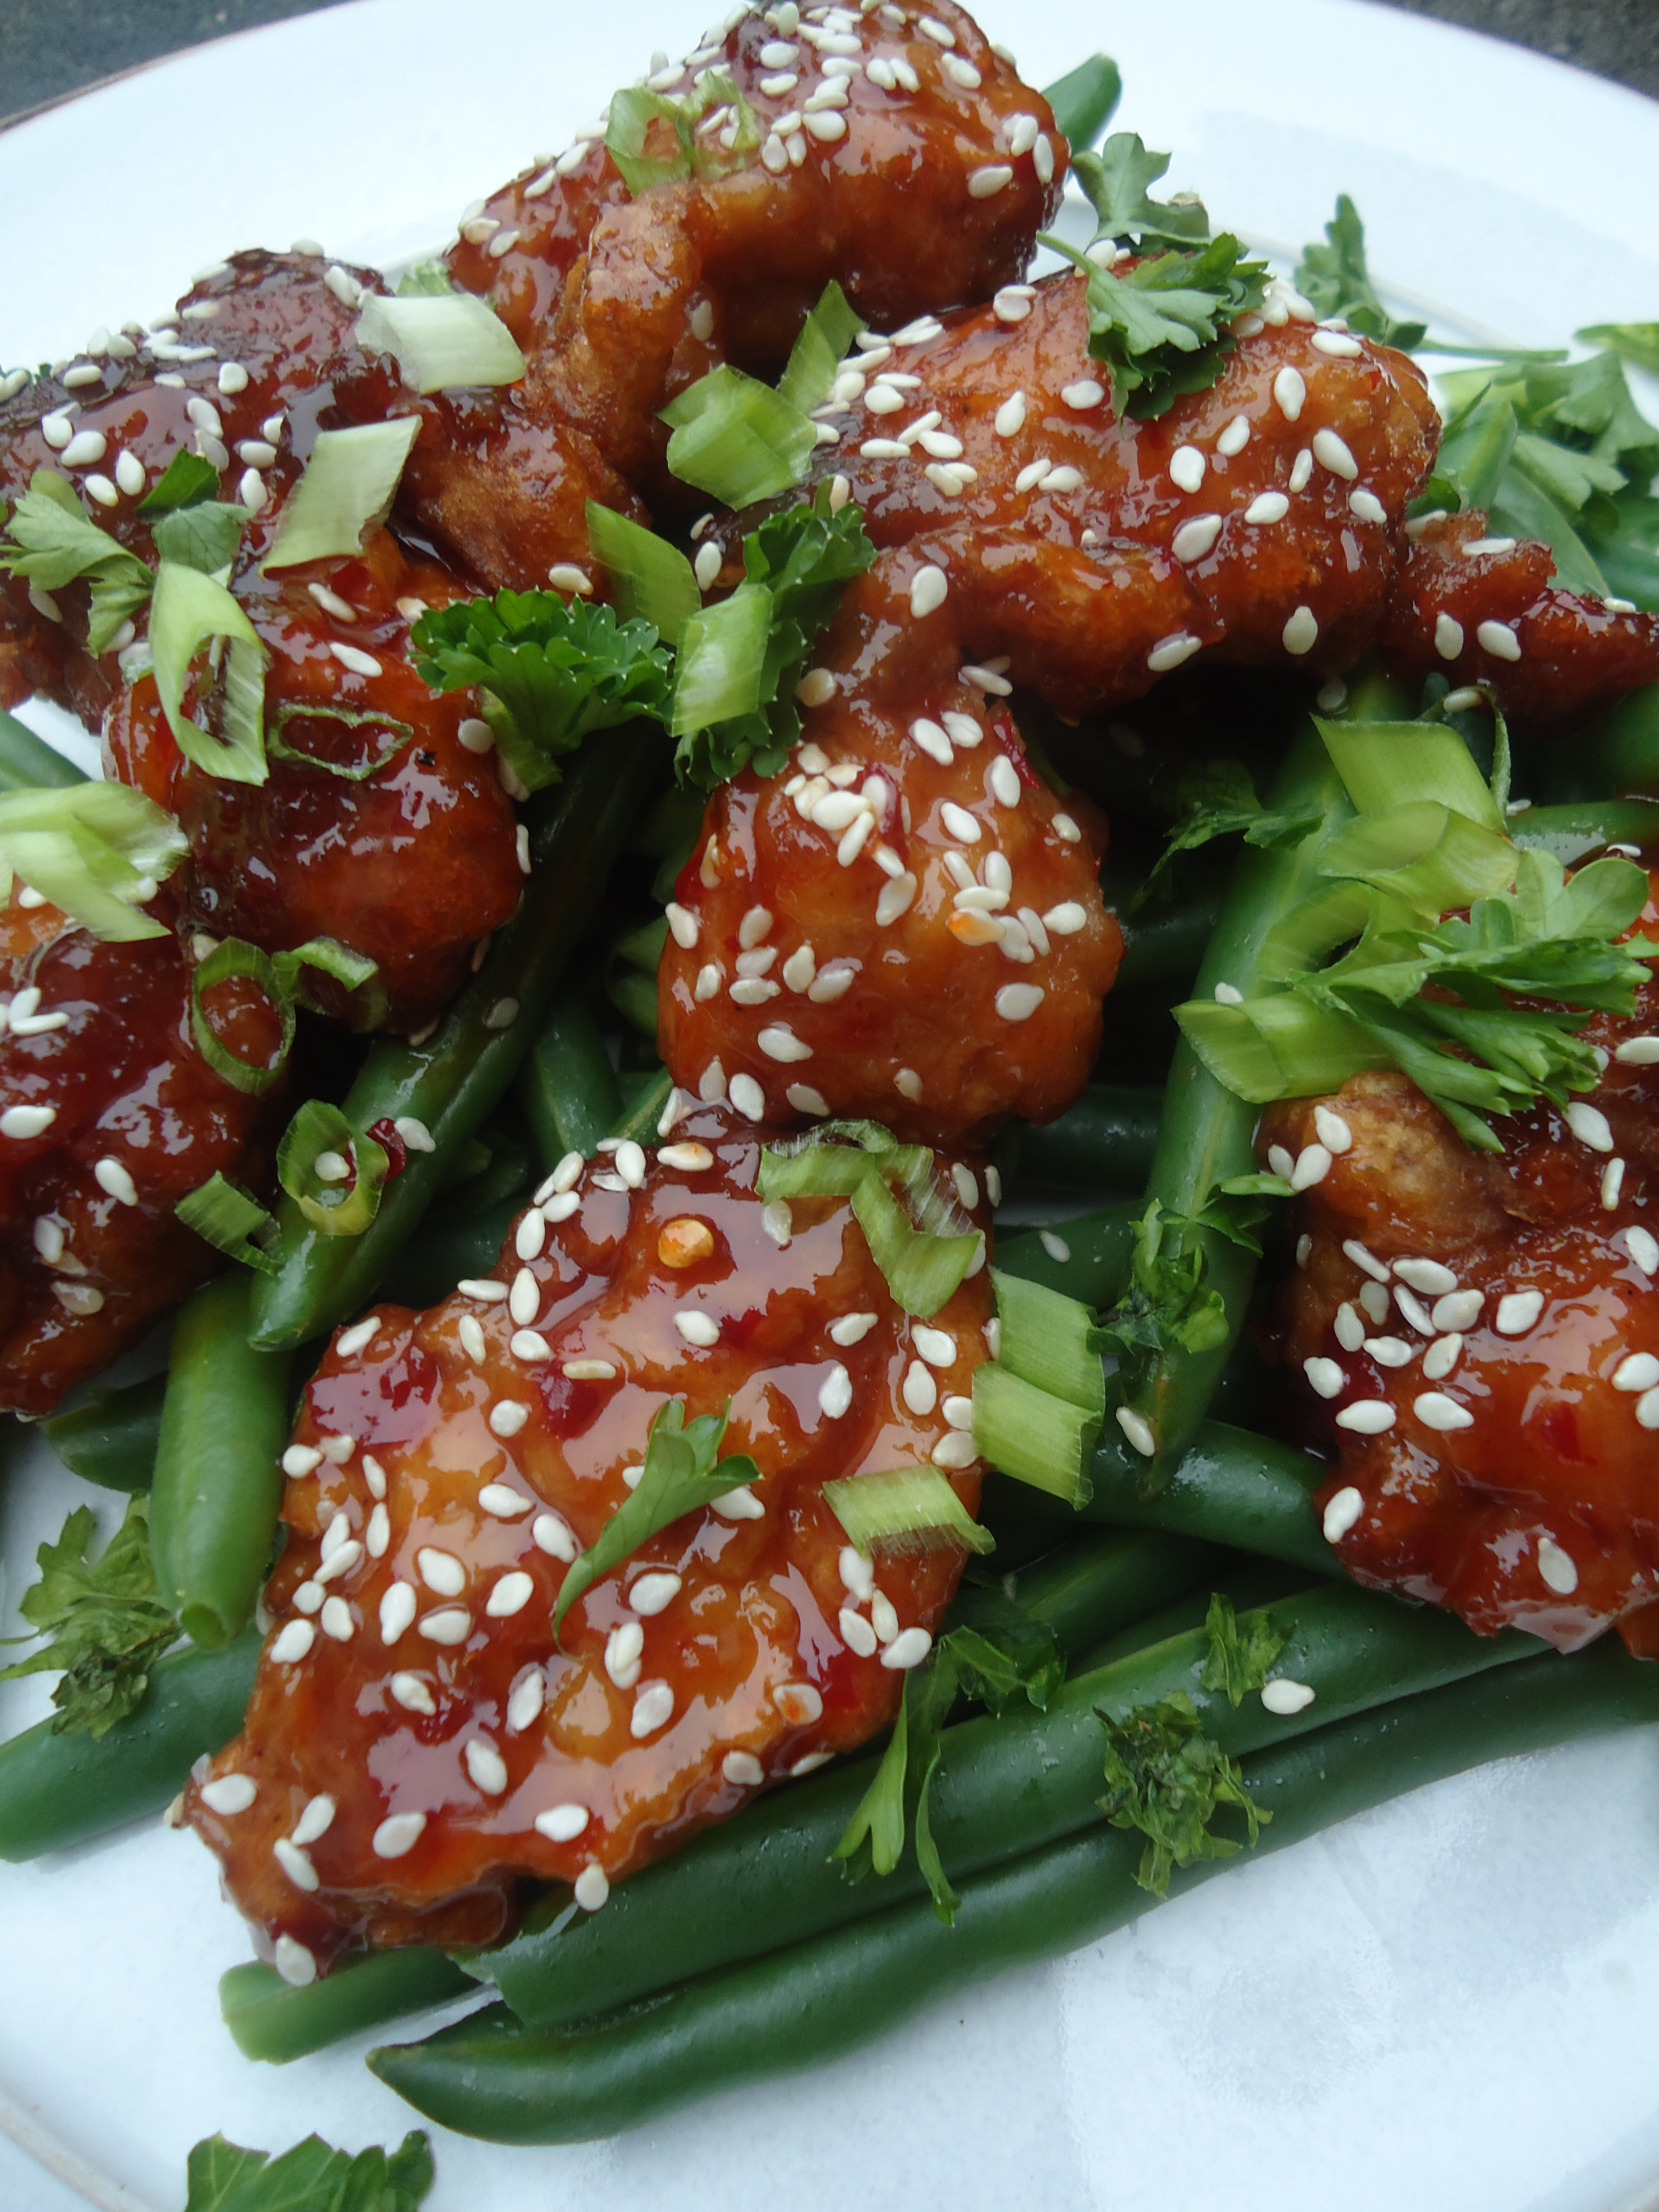 Sesame chicken and green beans on the menu tangies kitchen this dish is version of the classic chinese dish mala jiding where crispy chunks of deep fried battered chicken in a sweet sour and savory glaze packed forumfinder Images